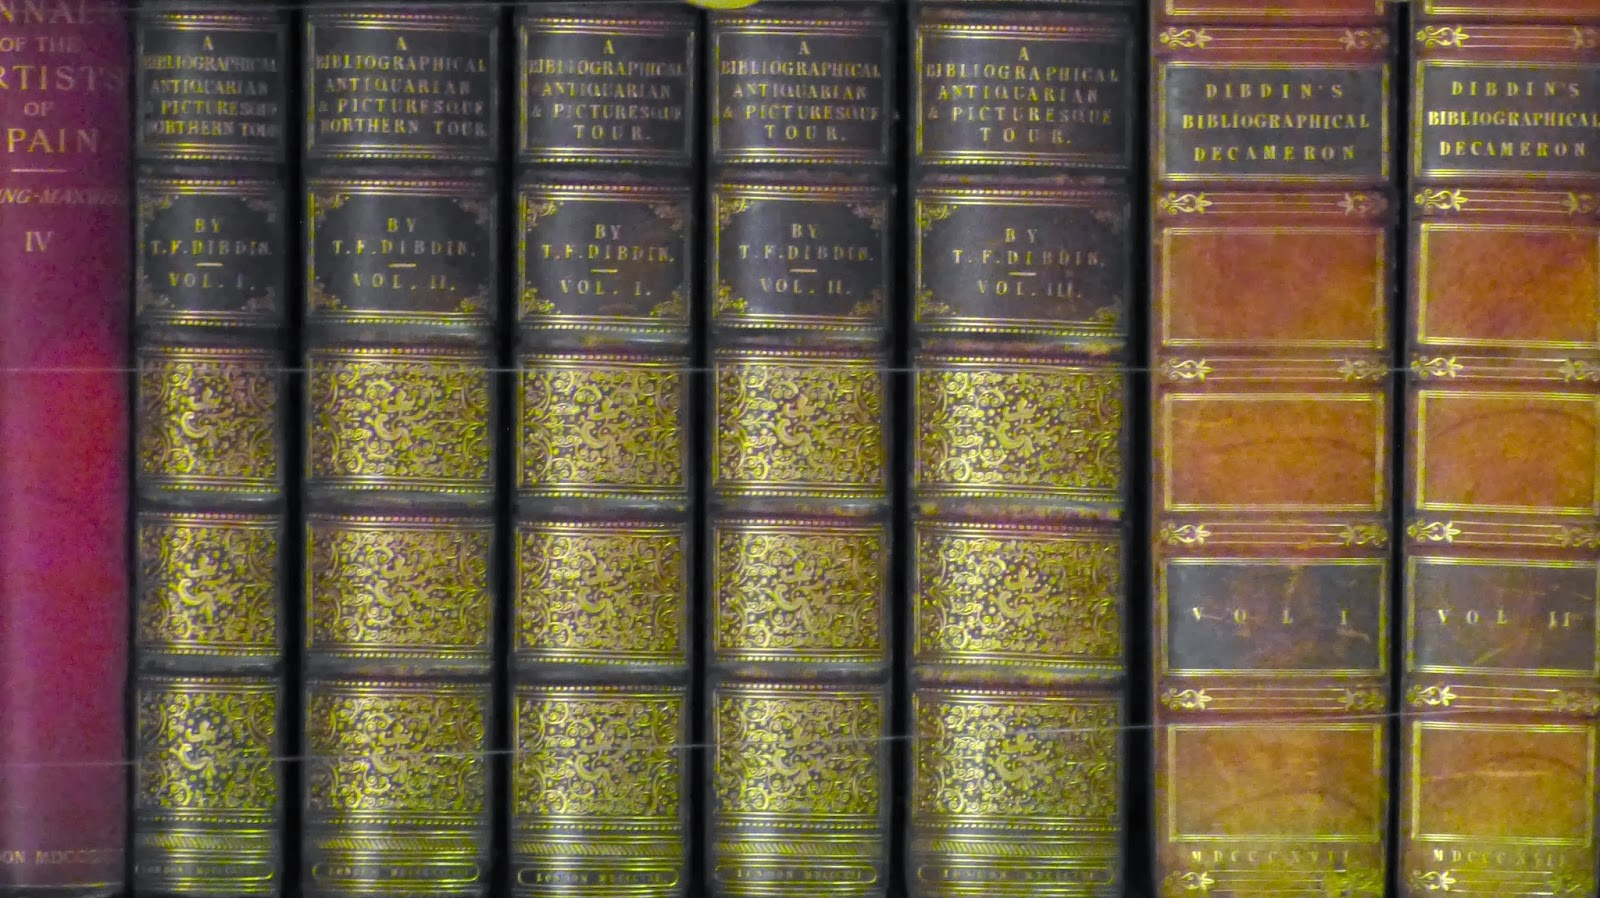 Books on the shelves at Knightshayes, Devon